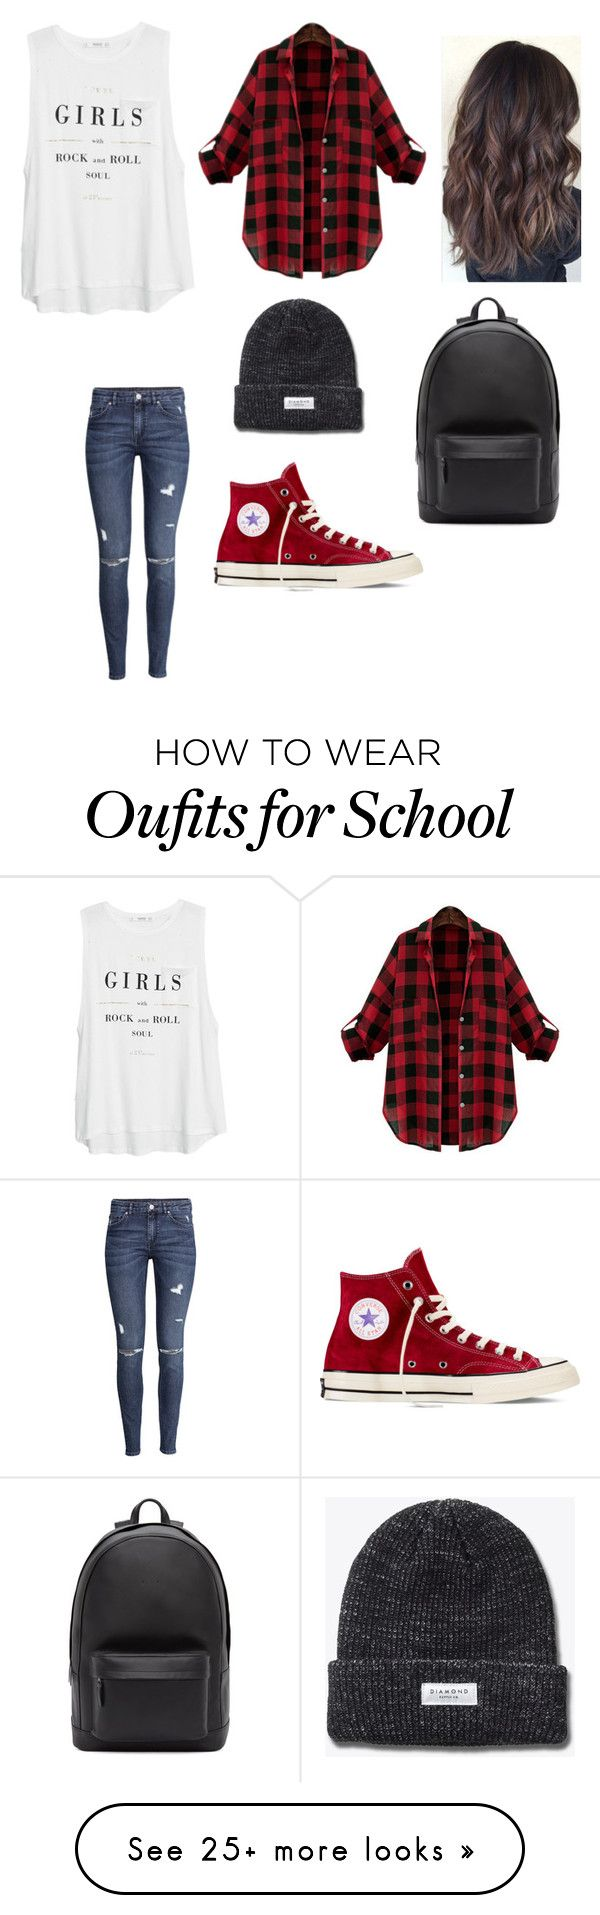 """""""A day at the school"""" by niallerbemine on Polyvore featuring MANGO, H&M, Converse and PB 0110"""